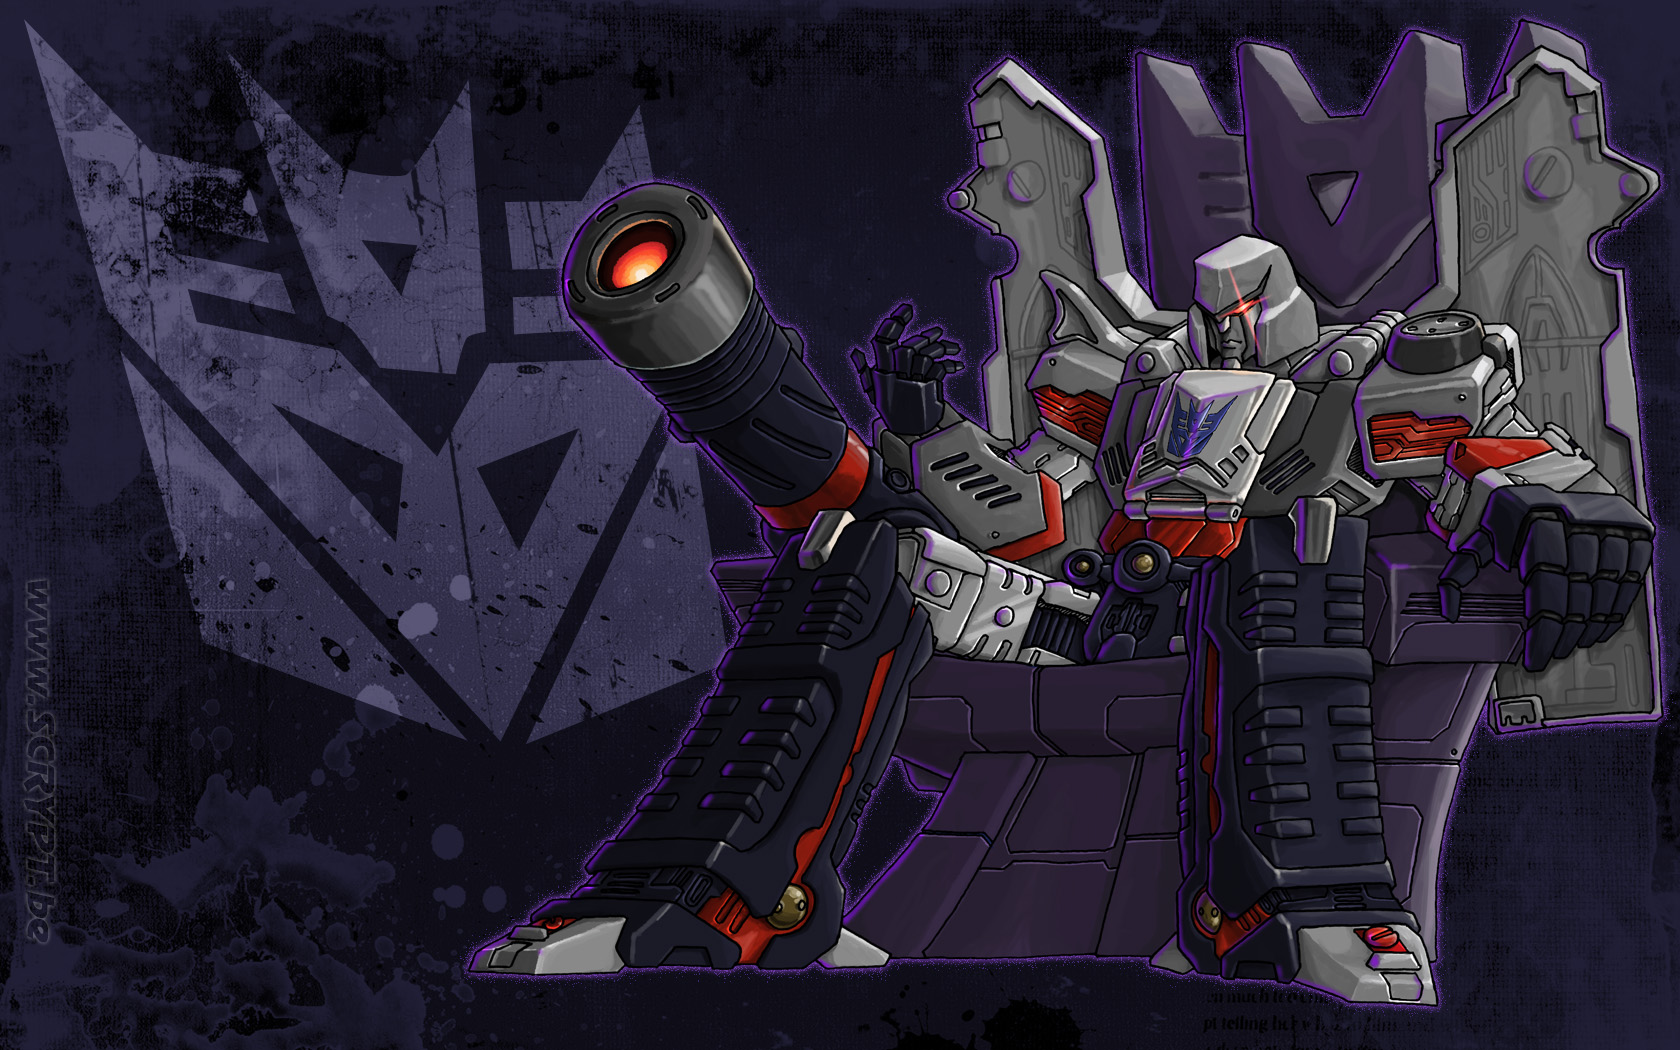 Iphone Shockwave Wallpapers: [77+] Megatron Wallpaper On WallpaperSafari